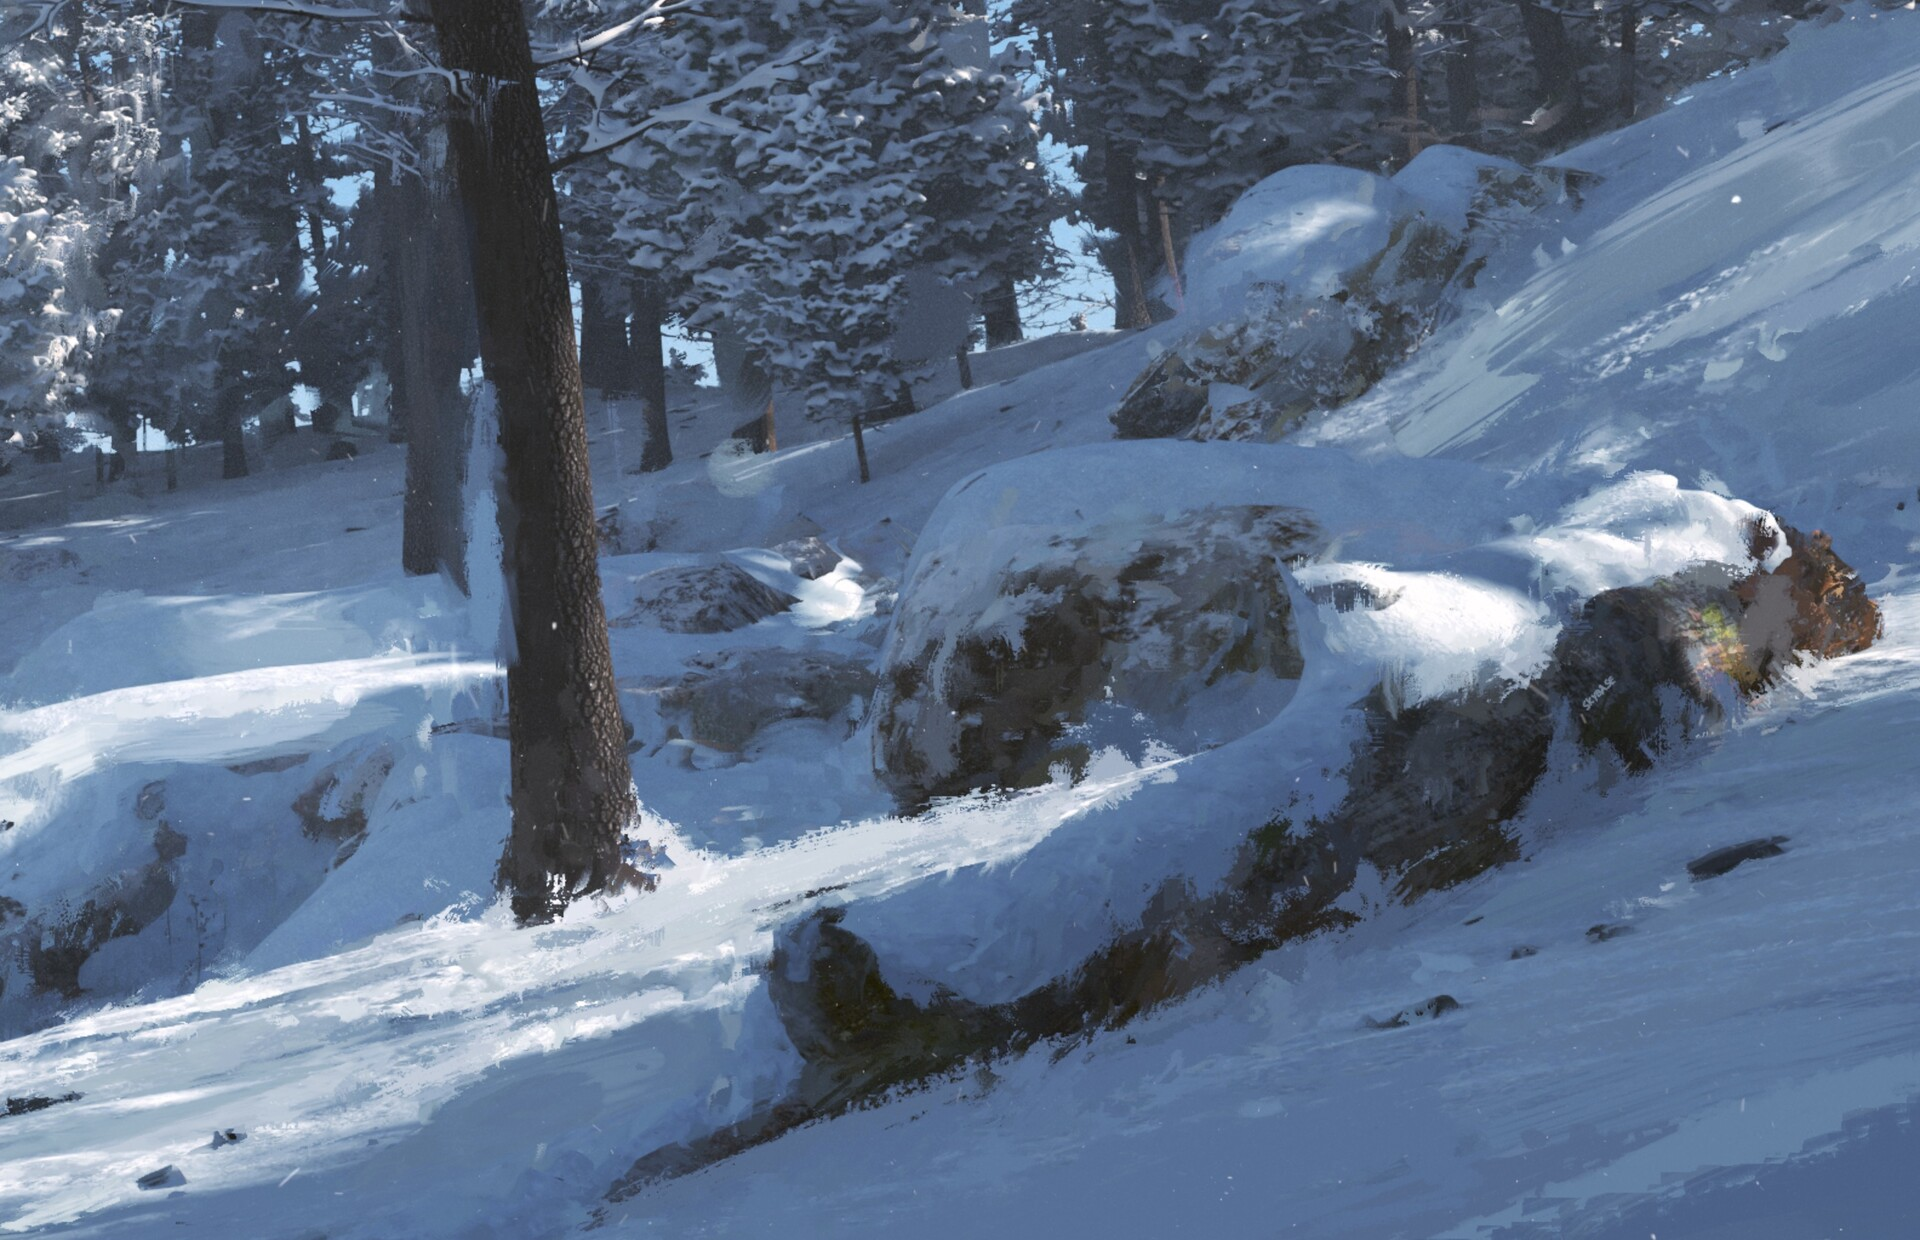 Details at 100%. I modified a lot of the assets adding elements such as snow and frost to the textures. Most of it was manual work.